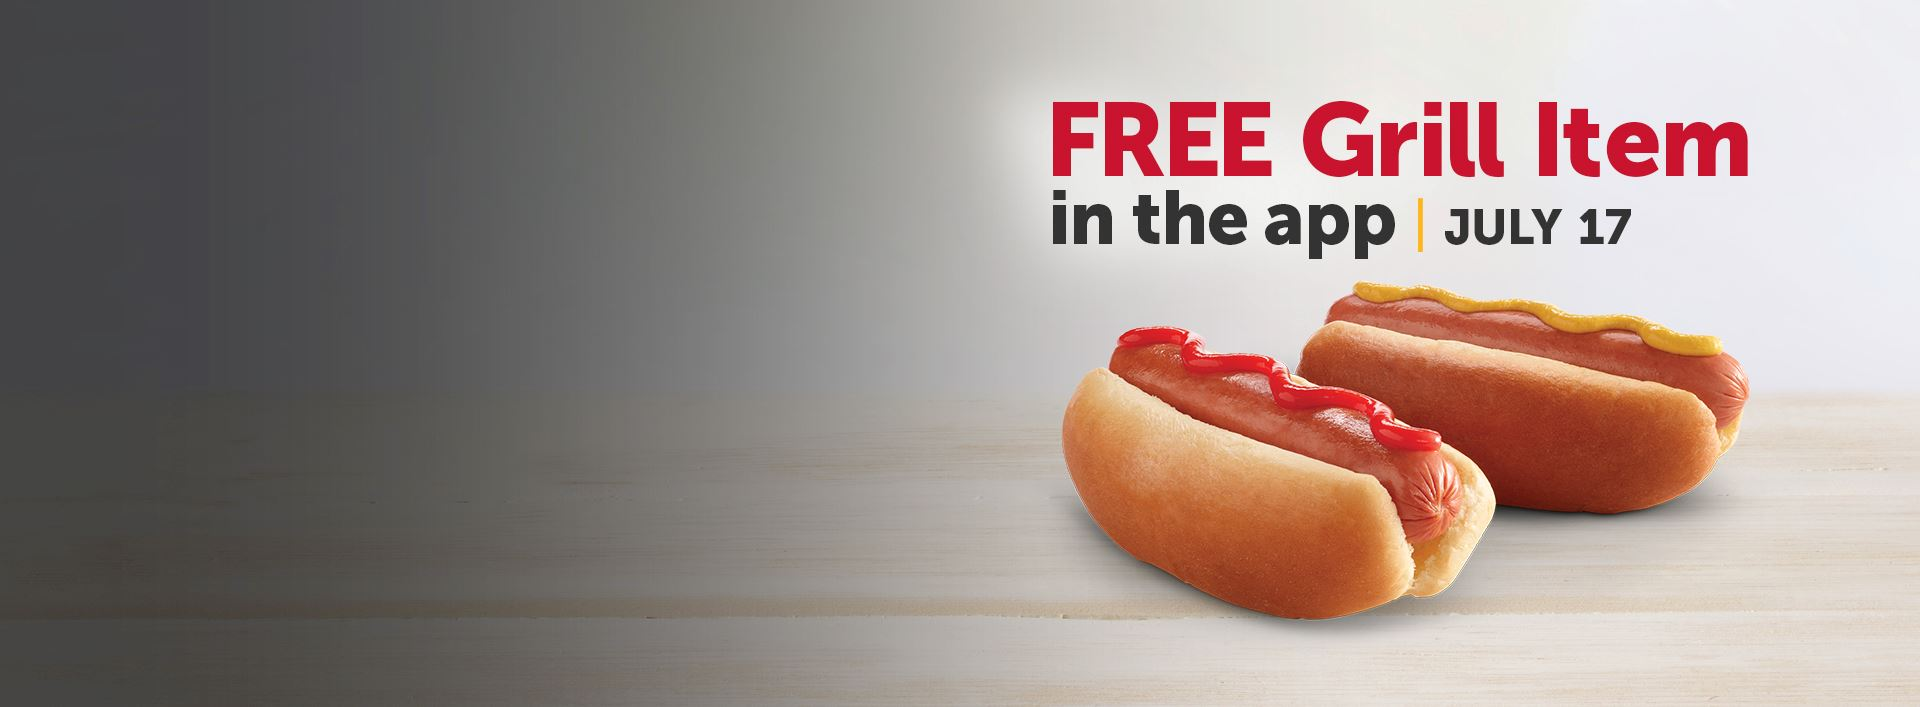 nationalhotdogday_19_homepageimagedesktop_1920x707